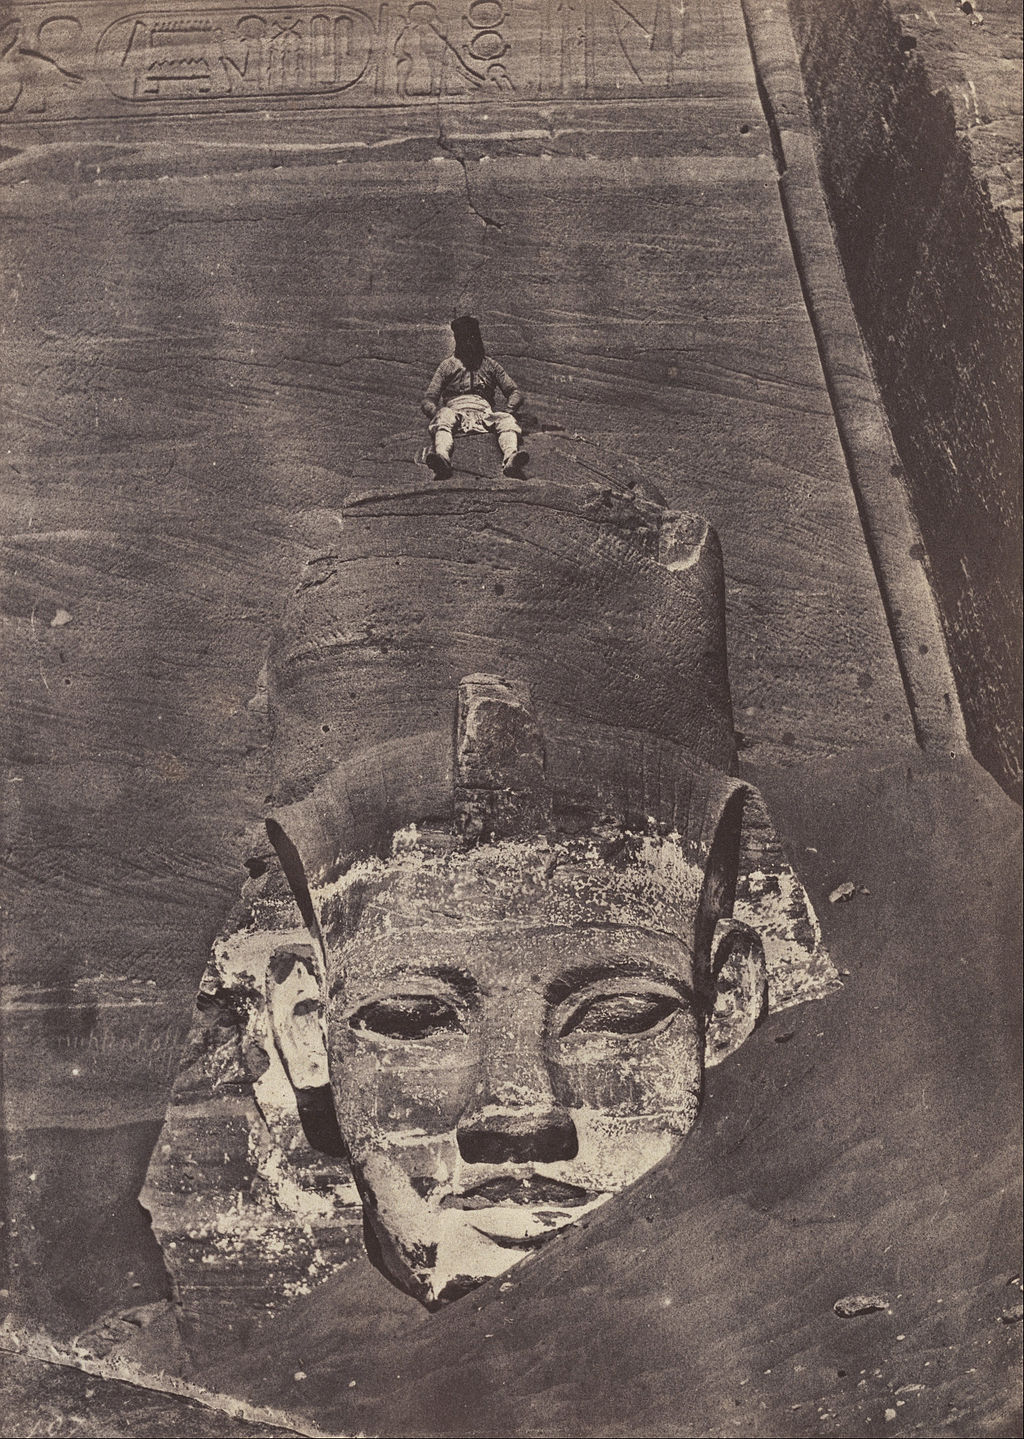 Maxime Du Camp, Abu Simbel, Western Colossus of the Temple of Ra, 1850, Salted paper print from a paper negative